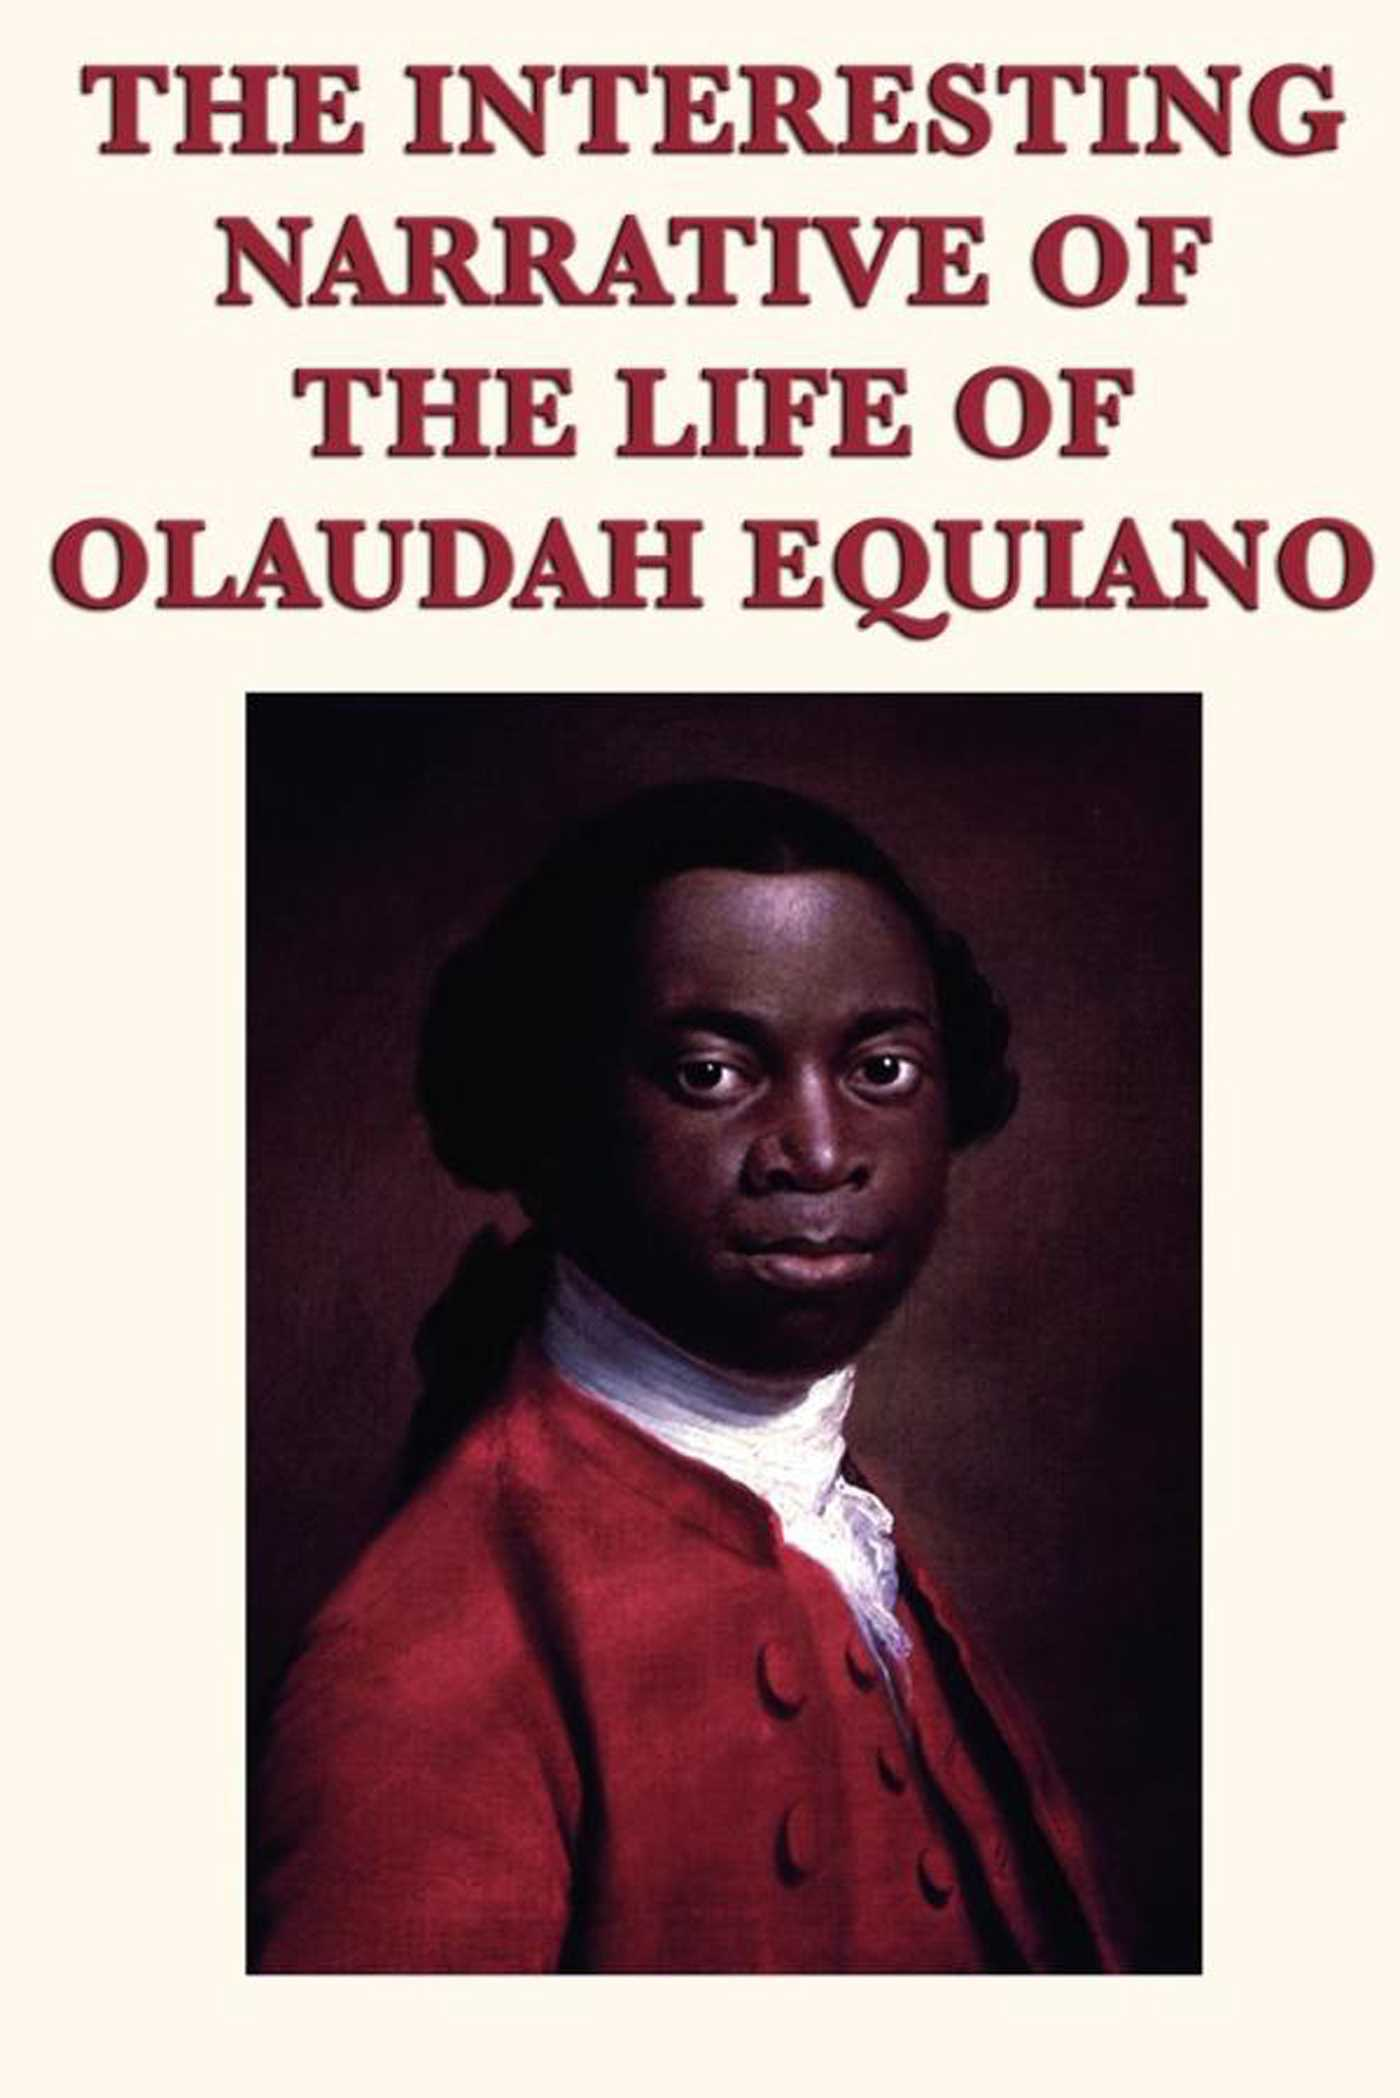 an analysis of slavery in the western society in the book the interesting narrative by olaudah equia